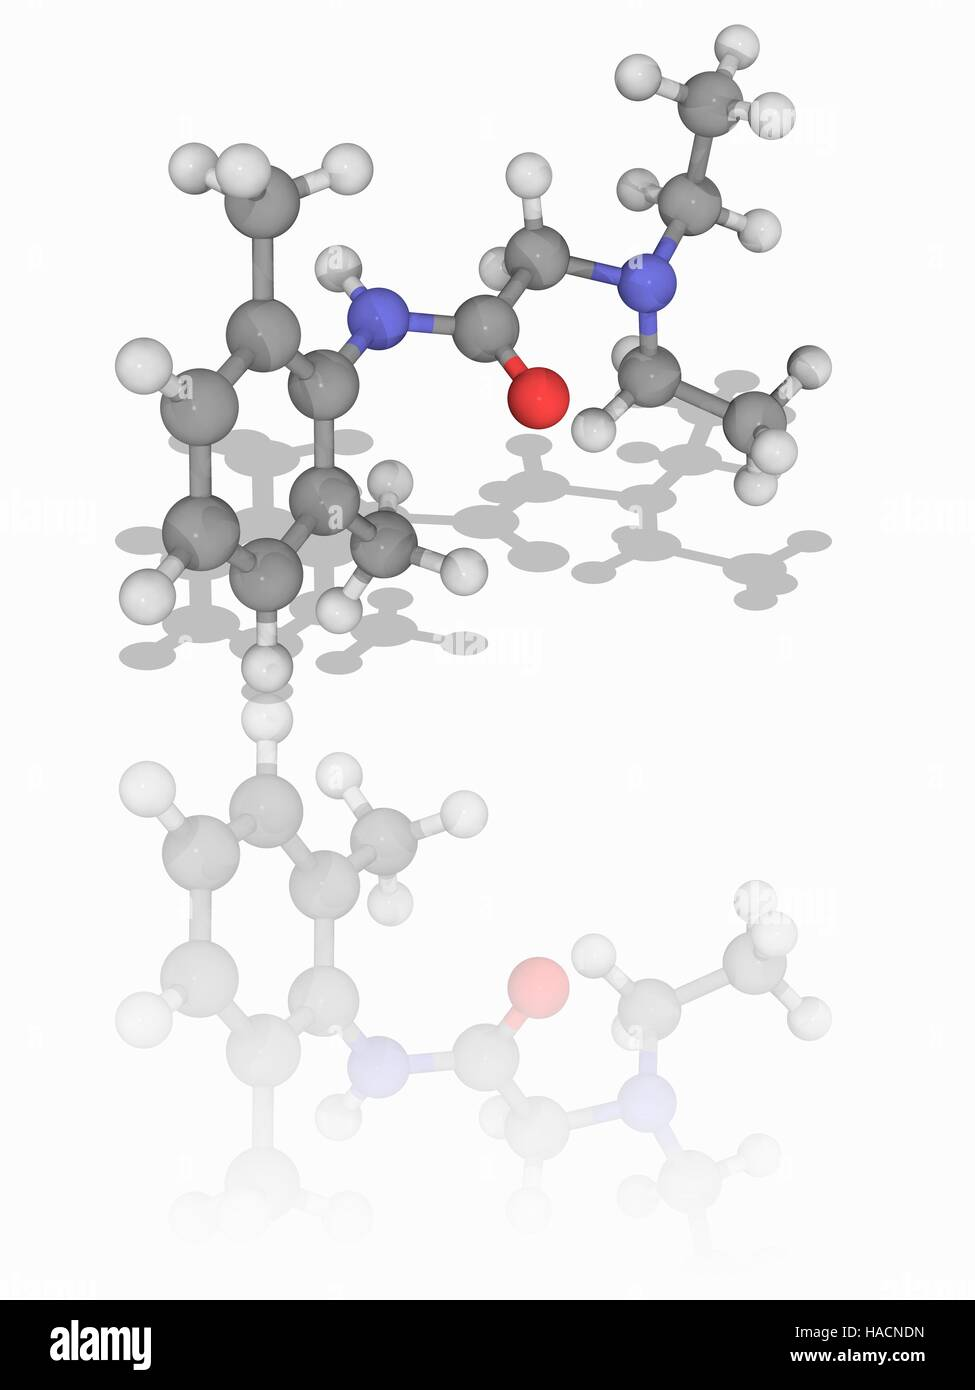 Lidocaine. Molecular model of the drug lidocaine (C14.H22.N2.O), used as a local anaesthetic and an anti-arrhythmic - Stock Image